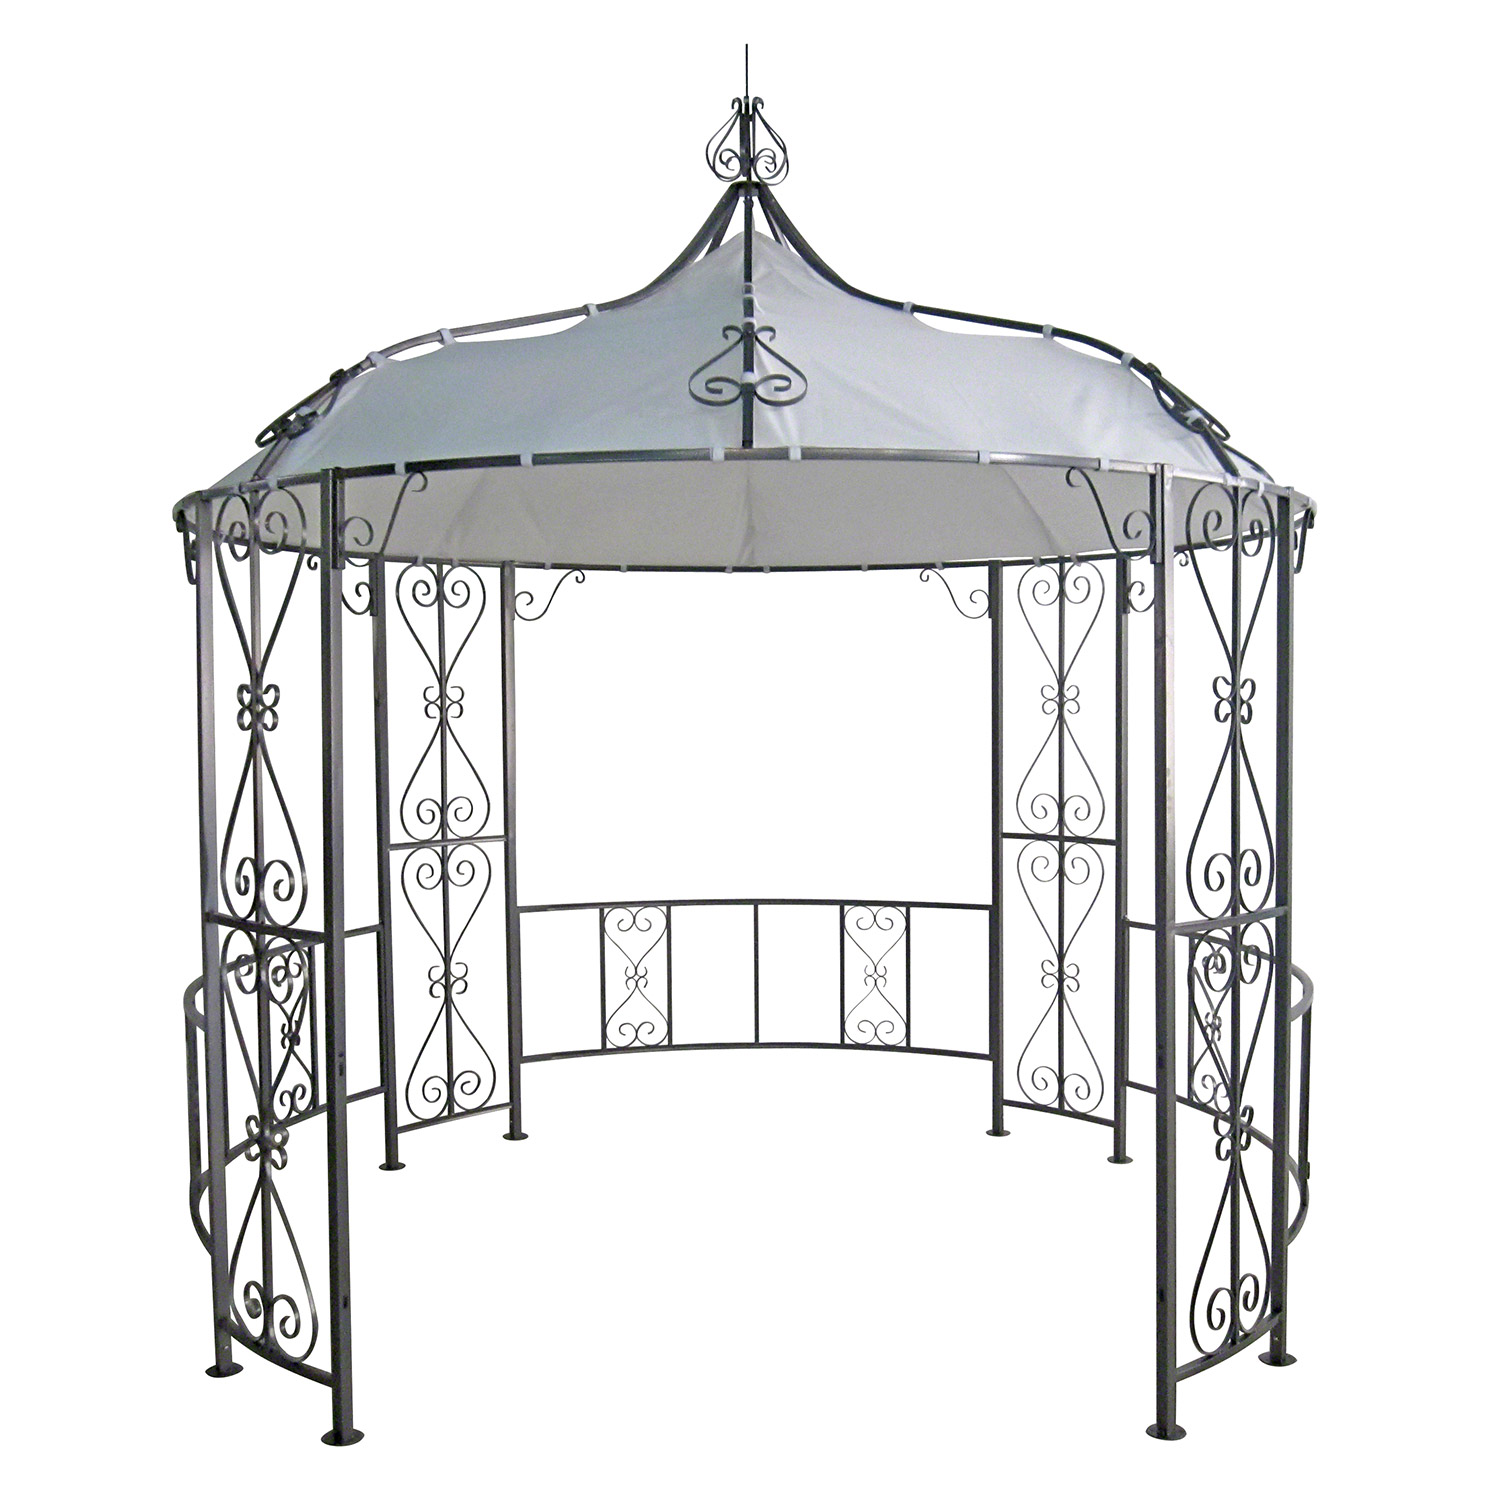 gazebo 3x3x2 9m garten pavillon pavillion zelt metall partyzelt gartenpavillion. Black Bedroom Furniture Sets. Home Design Ideas